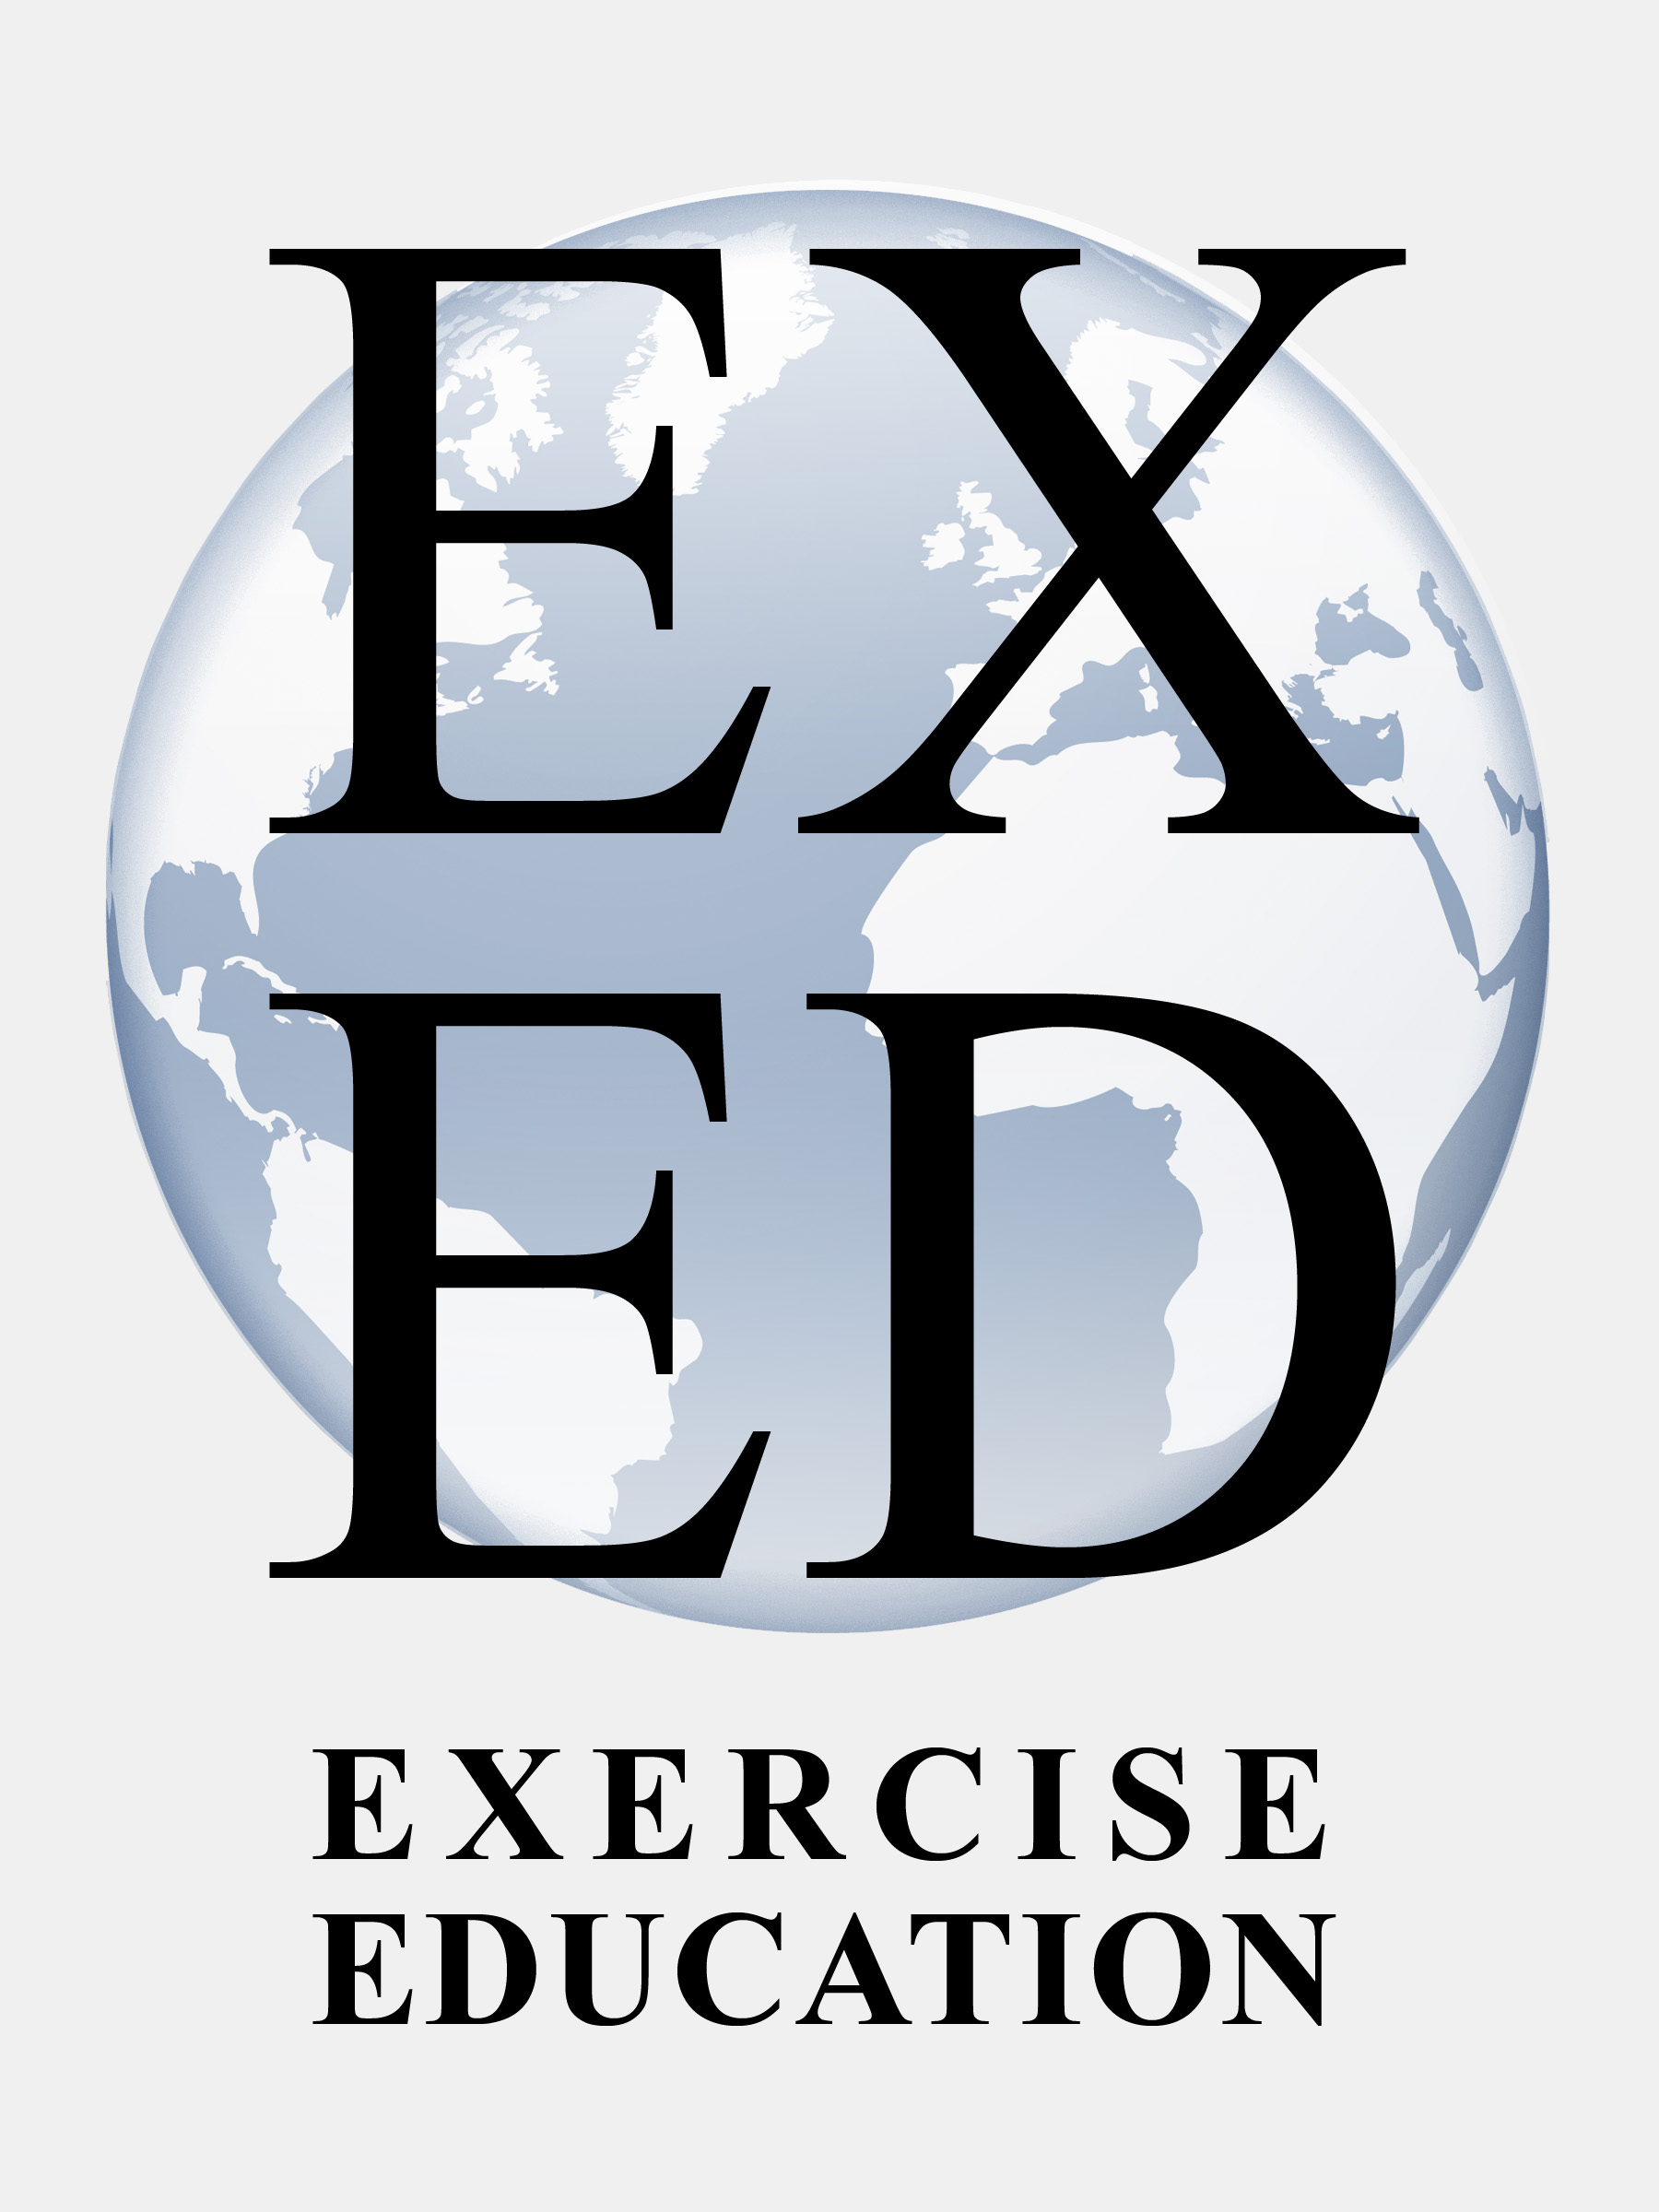 Exercise Education